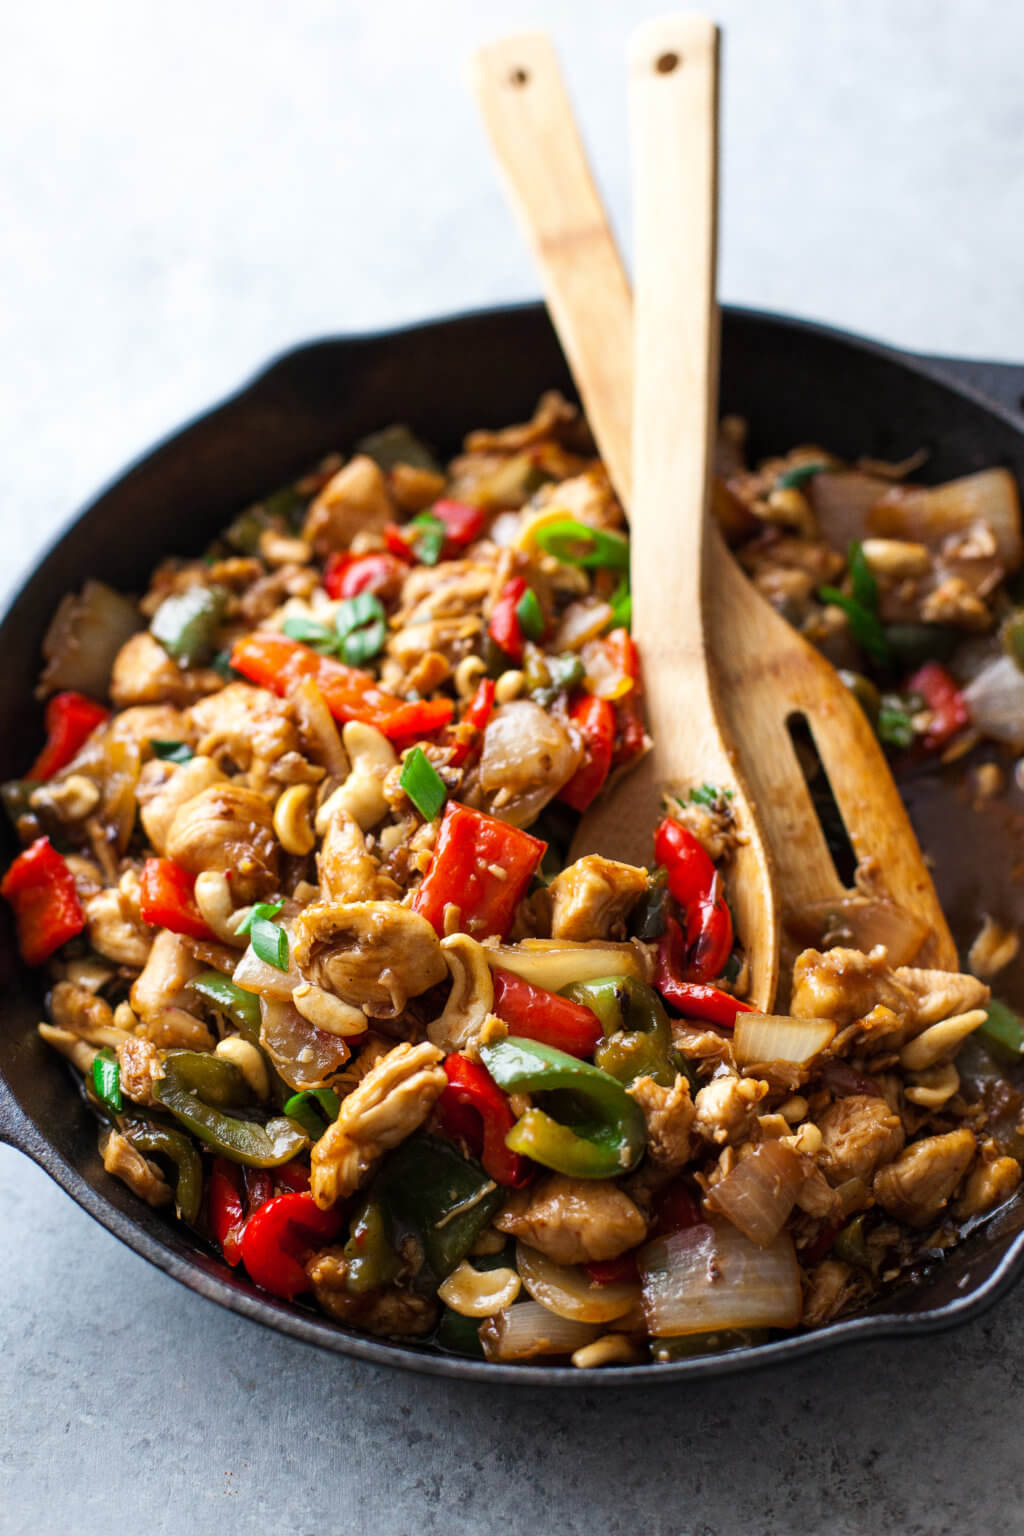 Paleo cashew chicken - Recipe by: My Natural FamilyI love how quick and easy this recipe is. Can use almond flour instead of arrowroot starch. I added an egg to the flour to coat the chicken.Omit the honey for Whole30